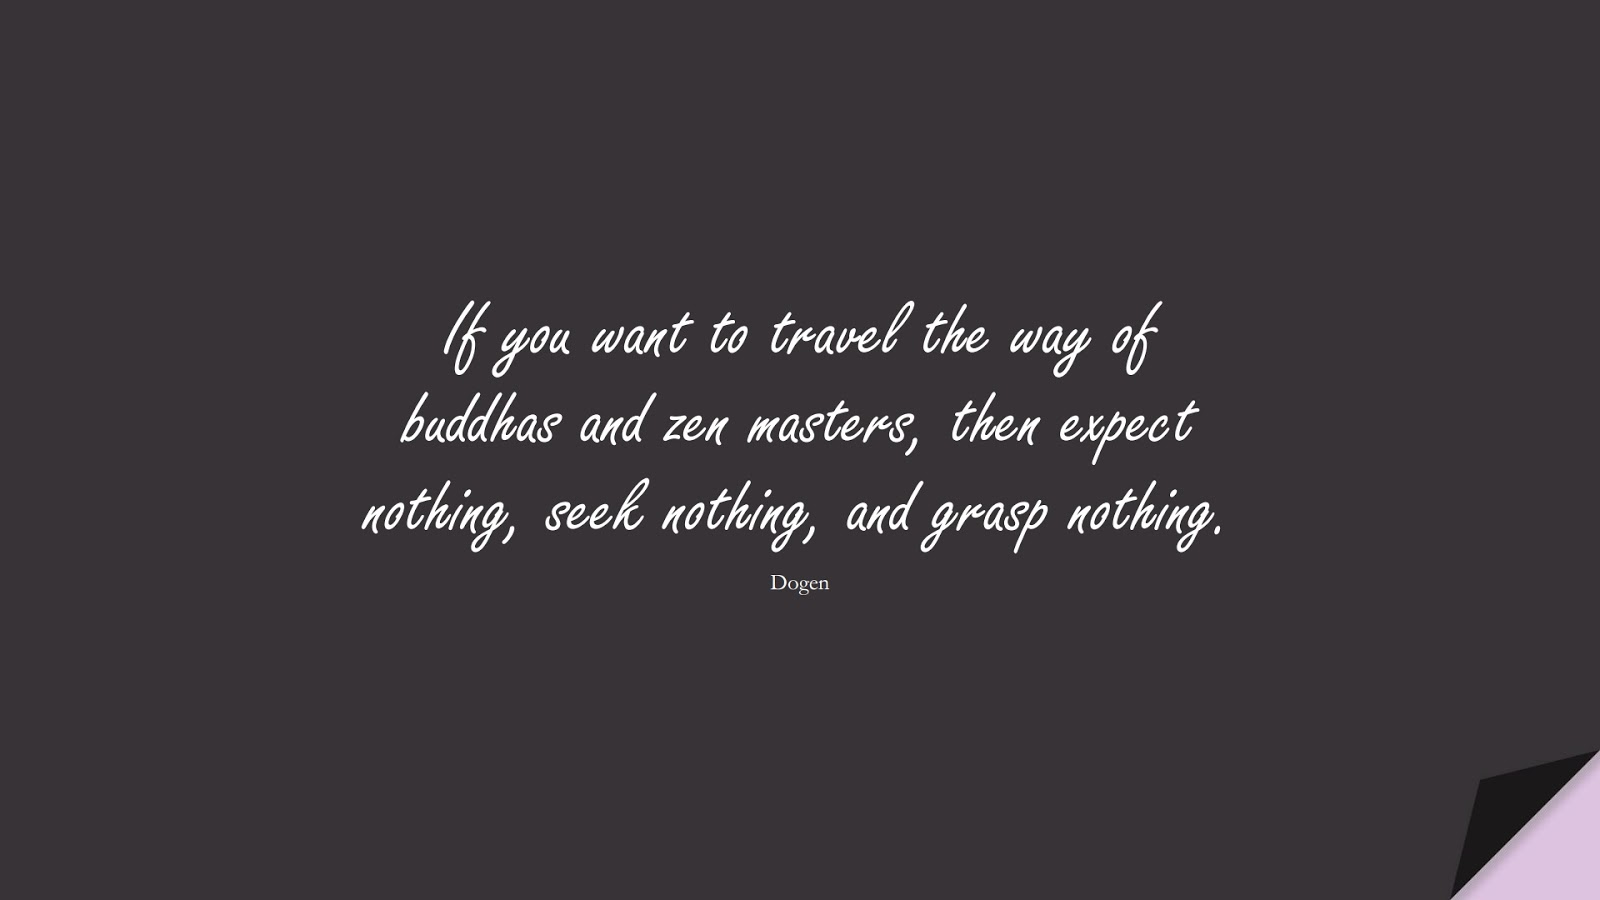 If you want to travel the way of buddhas and zen masters, then expect nothing, seek nothing, and grasp nothing. (Dogen);  #CalmQuotes